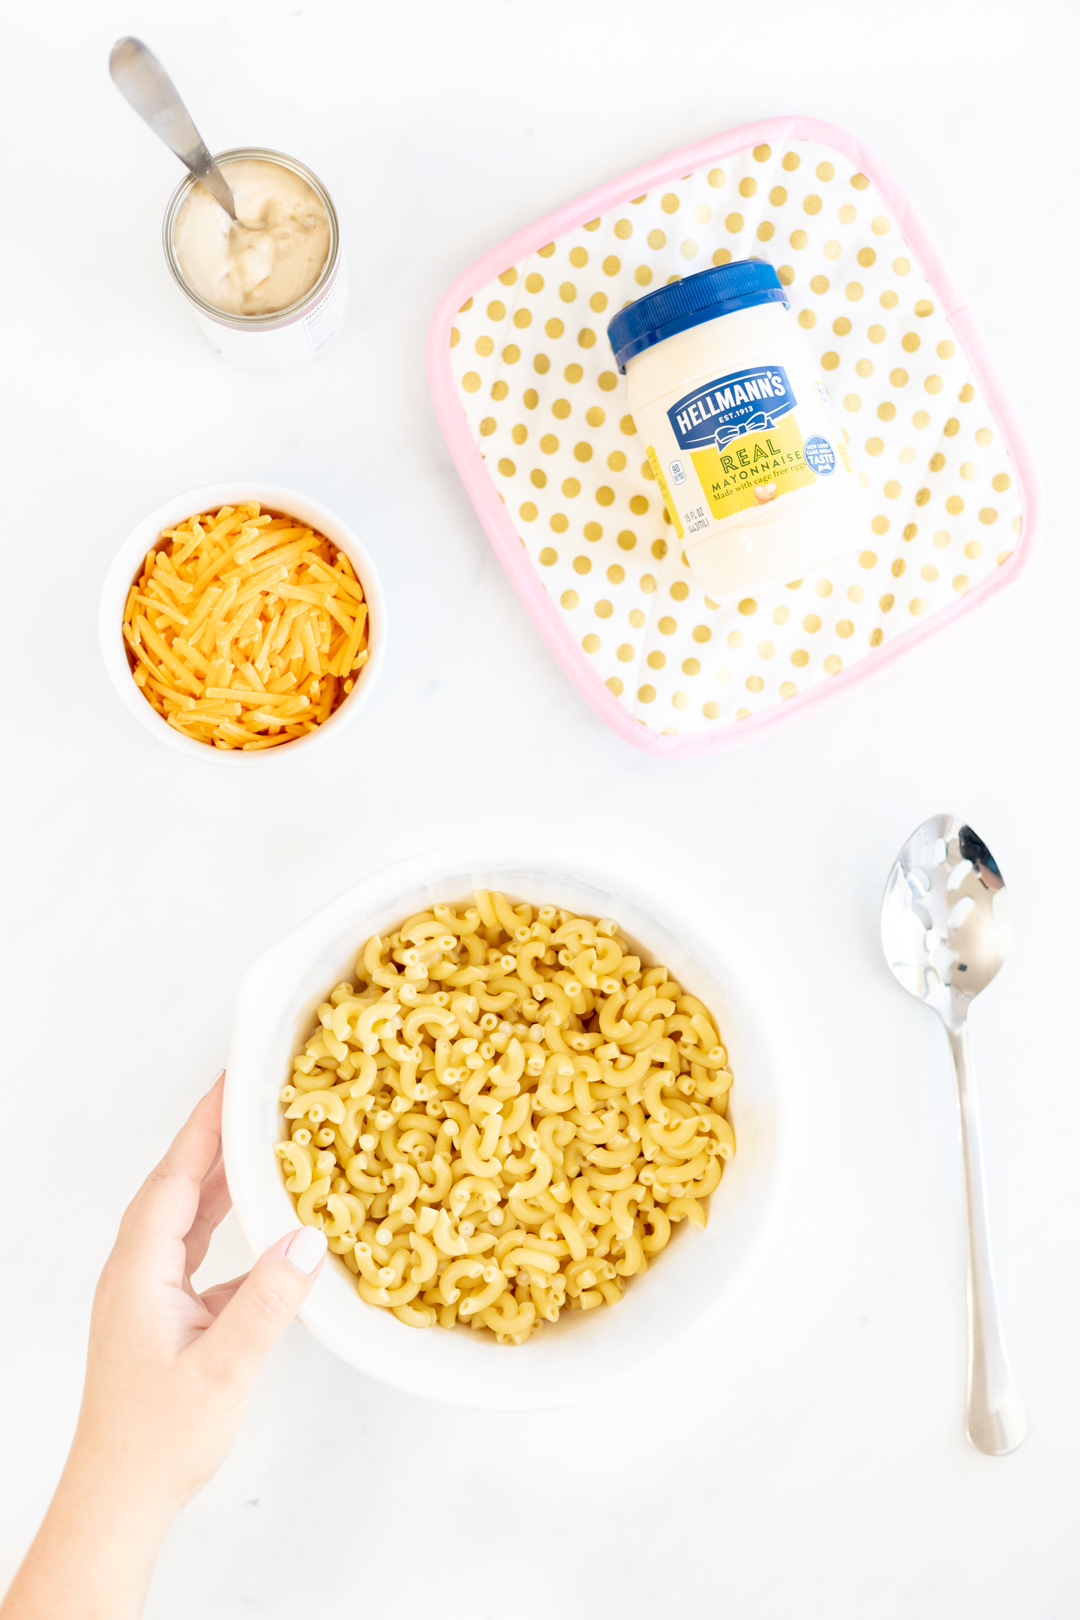 macaroni, hellmann's mayonnaise, shredded cheese and canned soup.